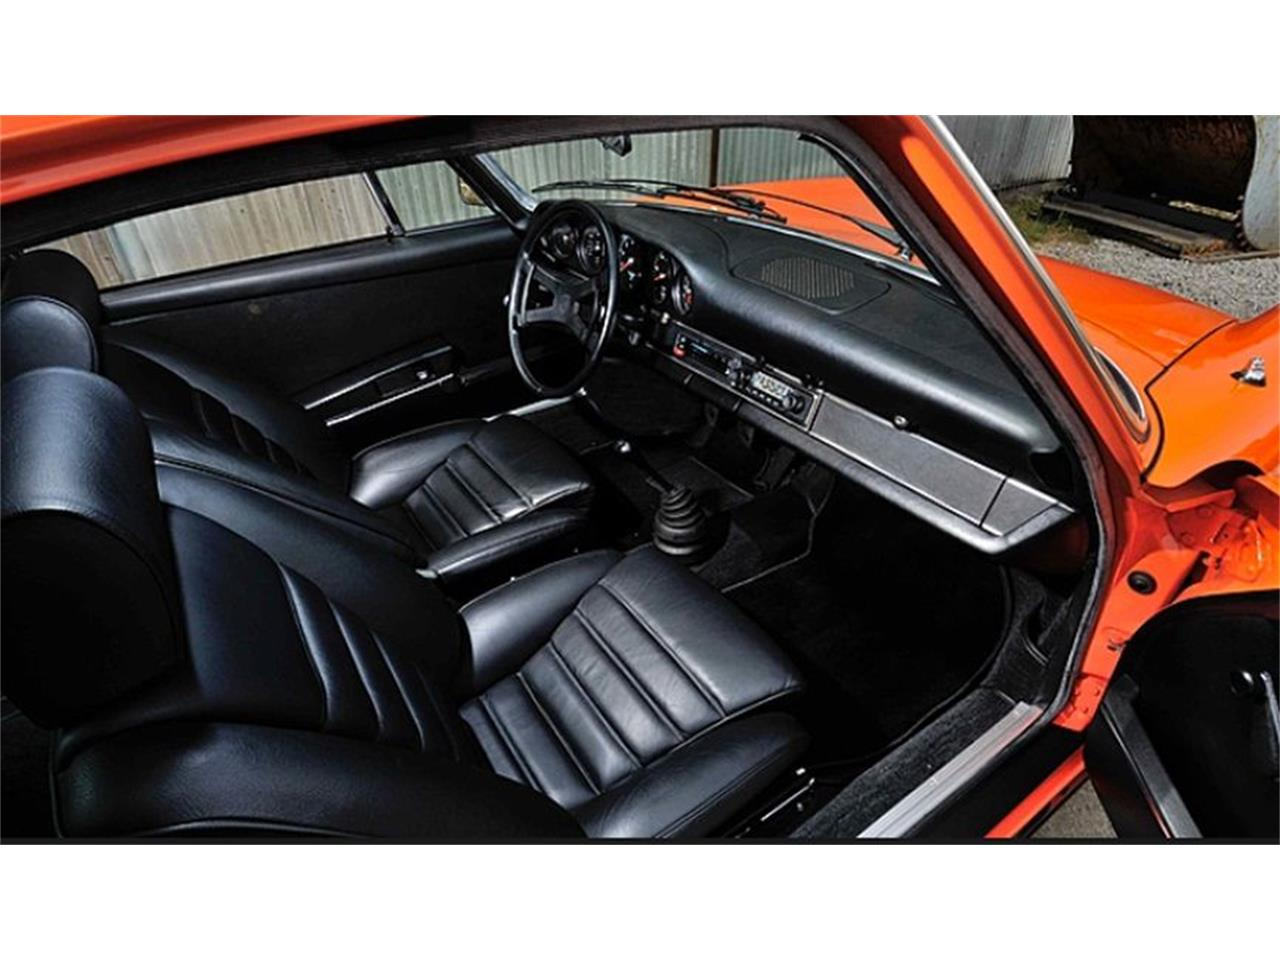 Large Picture of Classic '73 911 Carrera located in Florida Offered by Walt Grace Vintage - MZ94